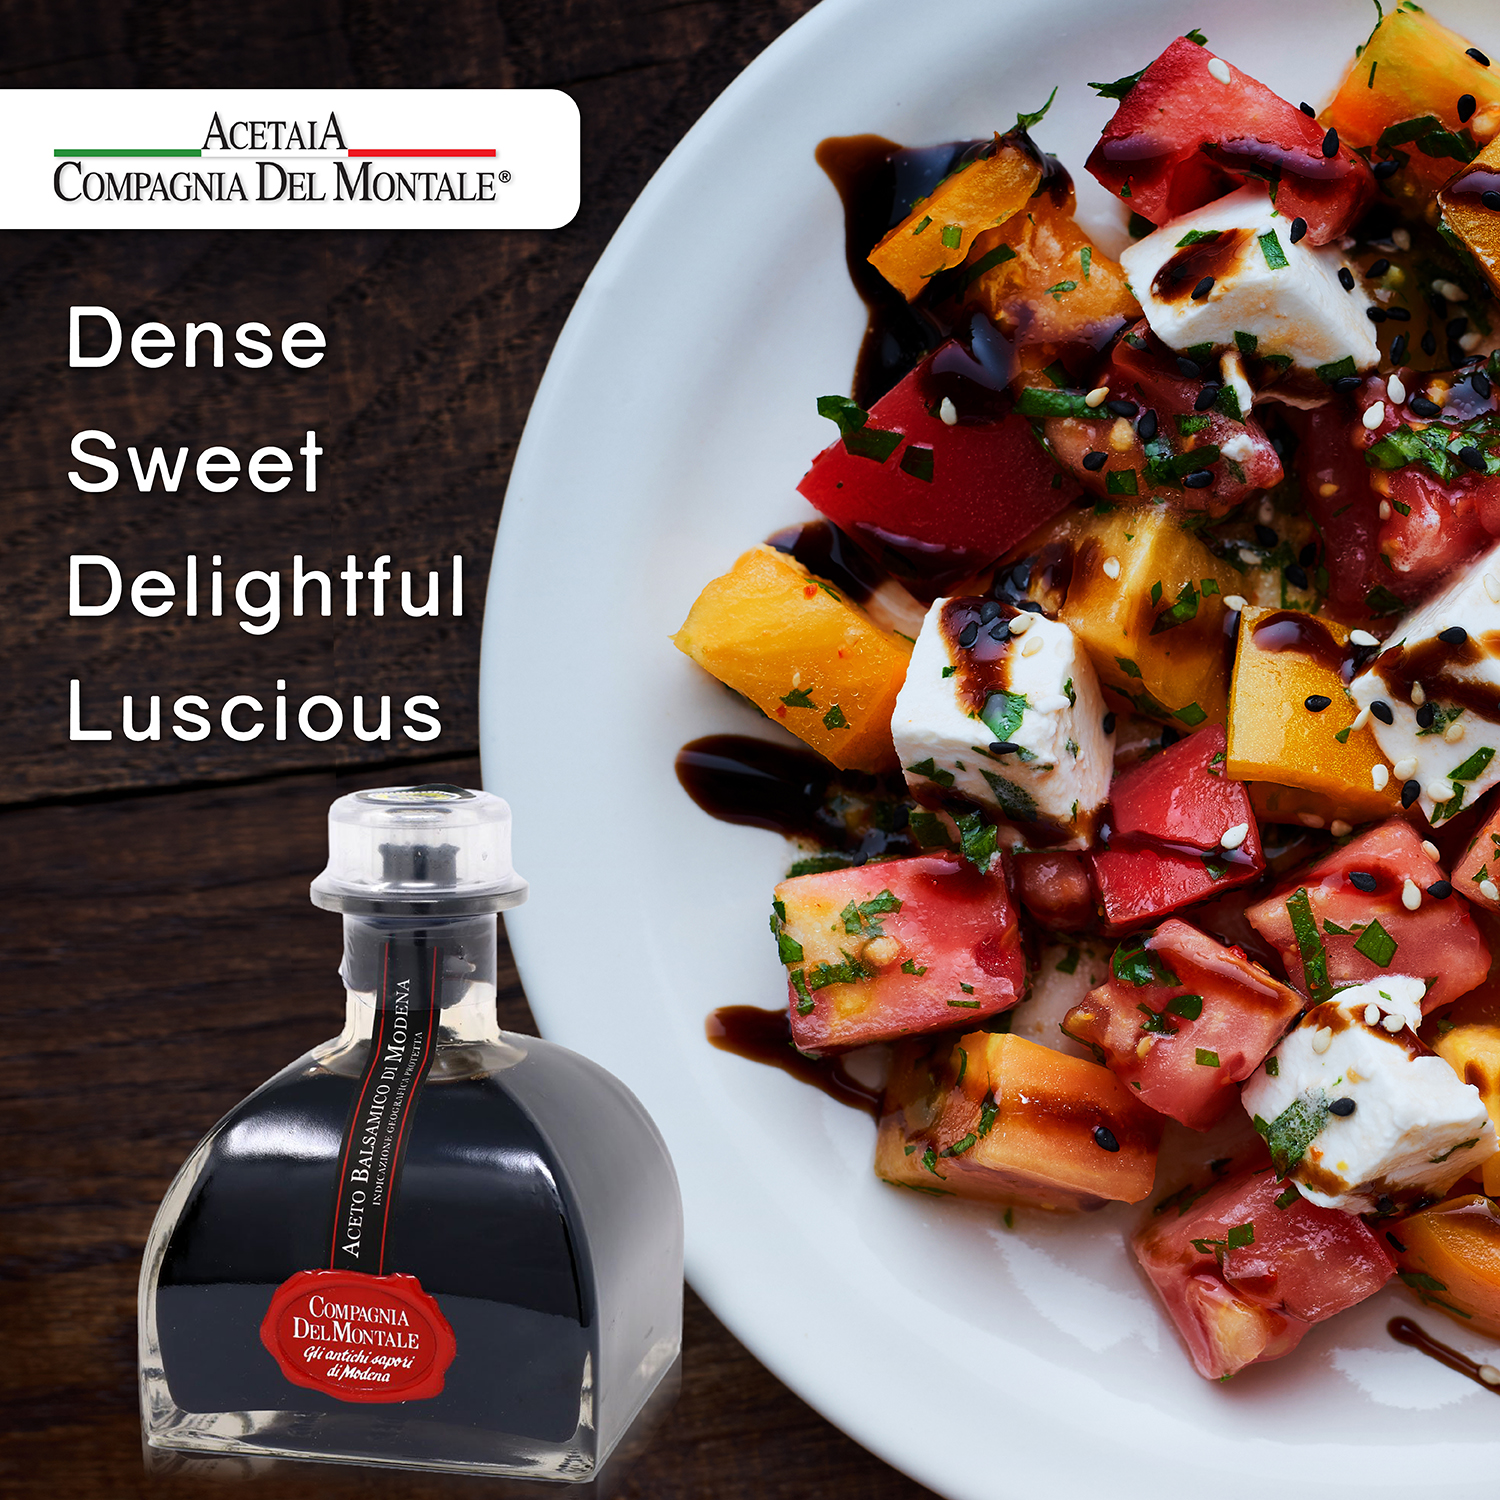 Cucina & Amore White Balsamic Vinegar Details About Compagnia Del Montale Balsamic Vinegar Of Modena Igp 8 8 Fl Oz 250ml